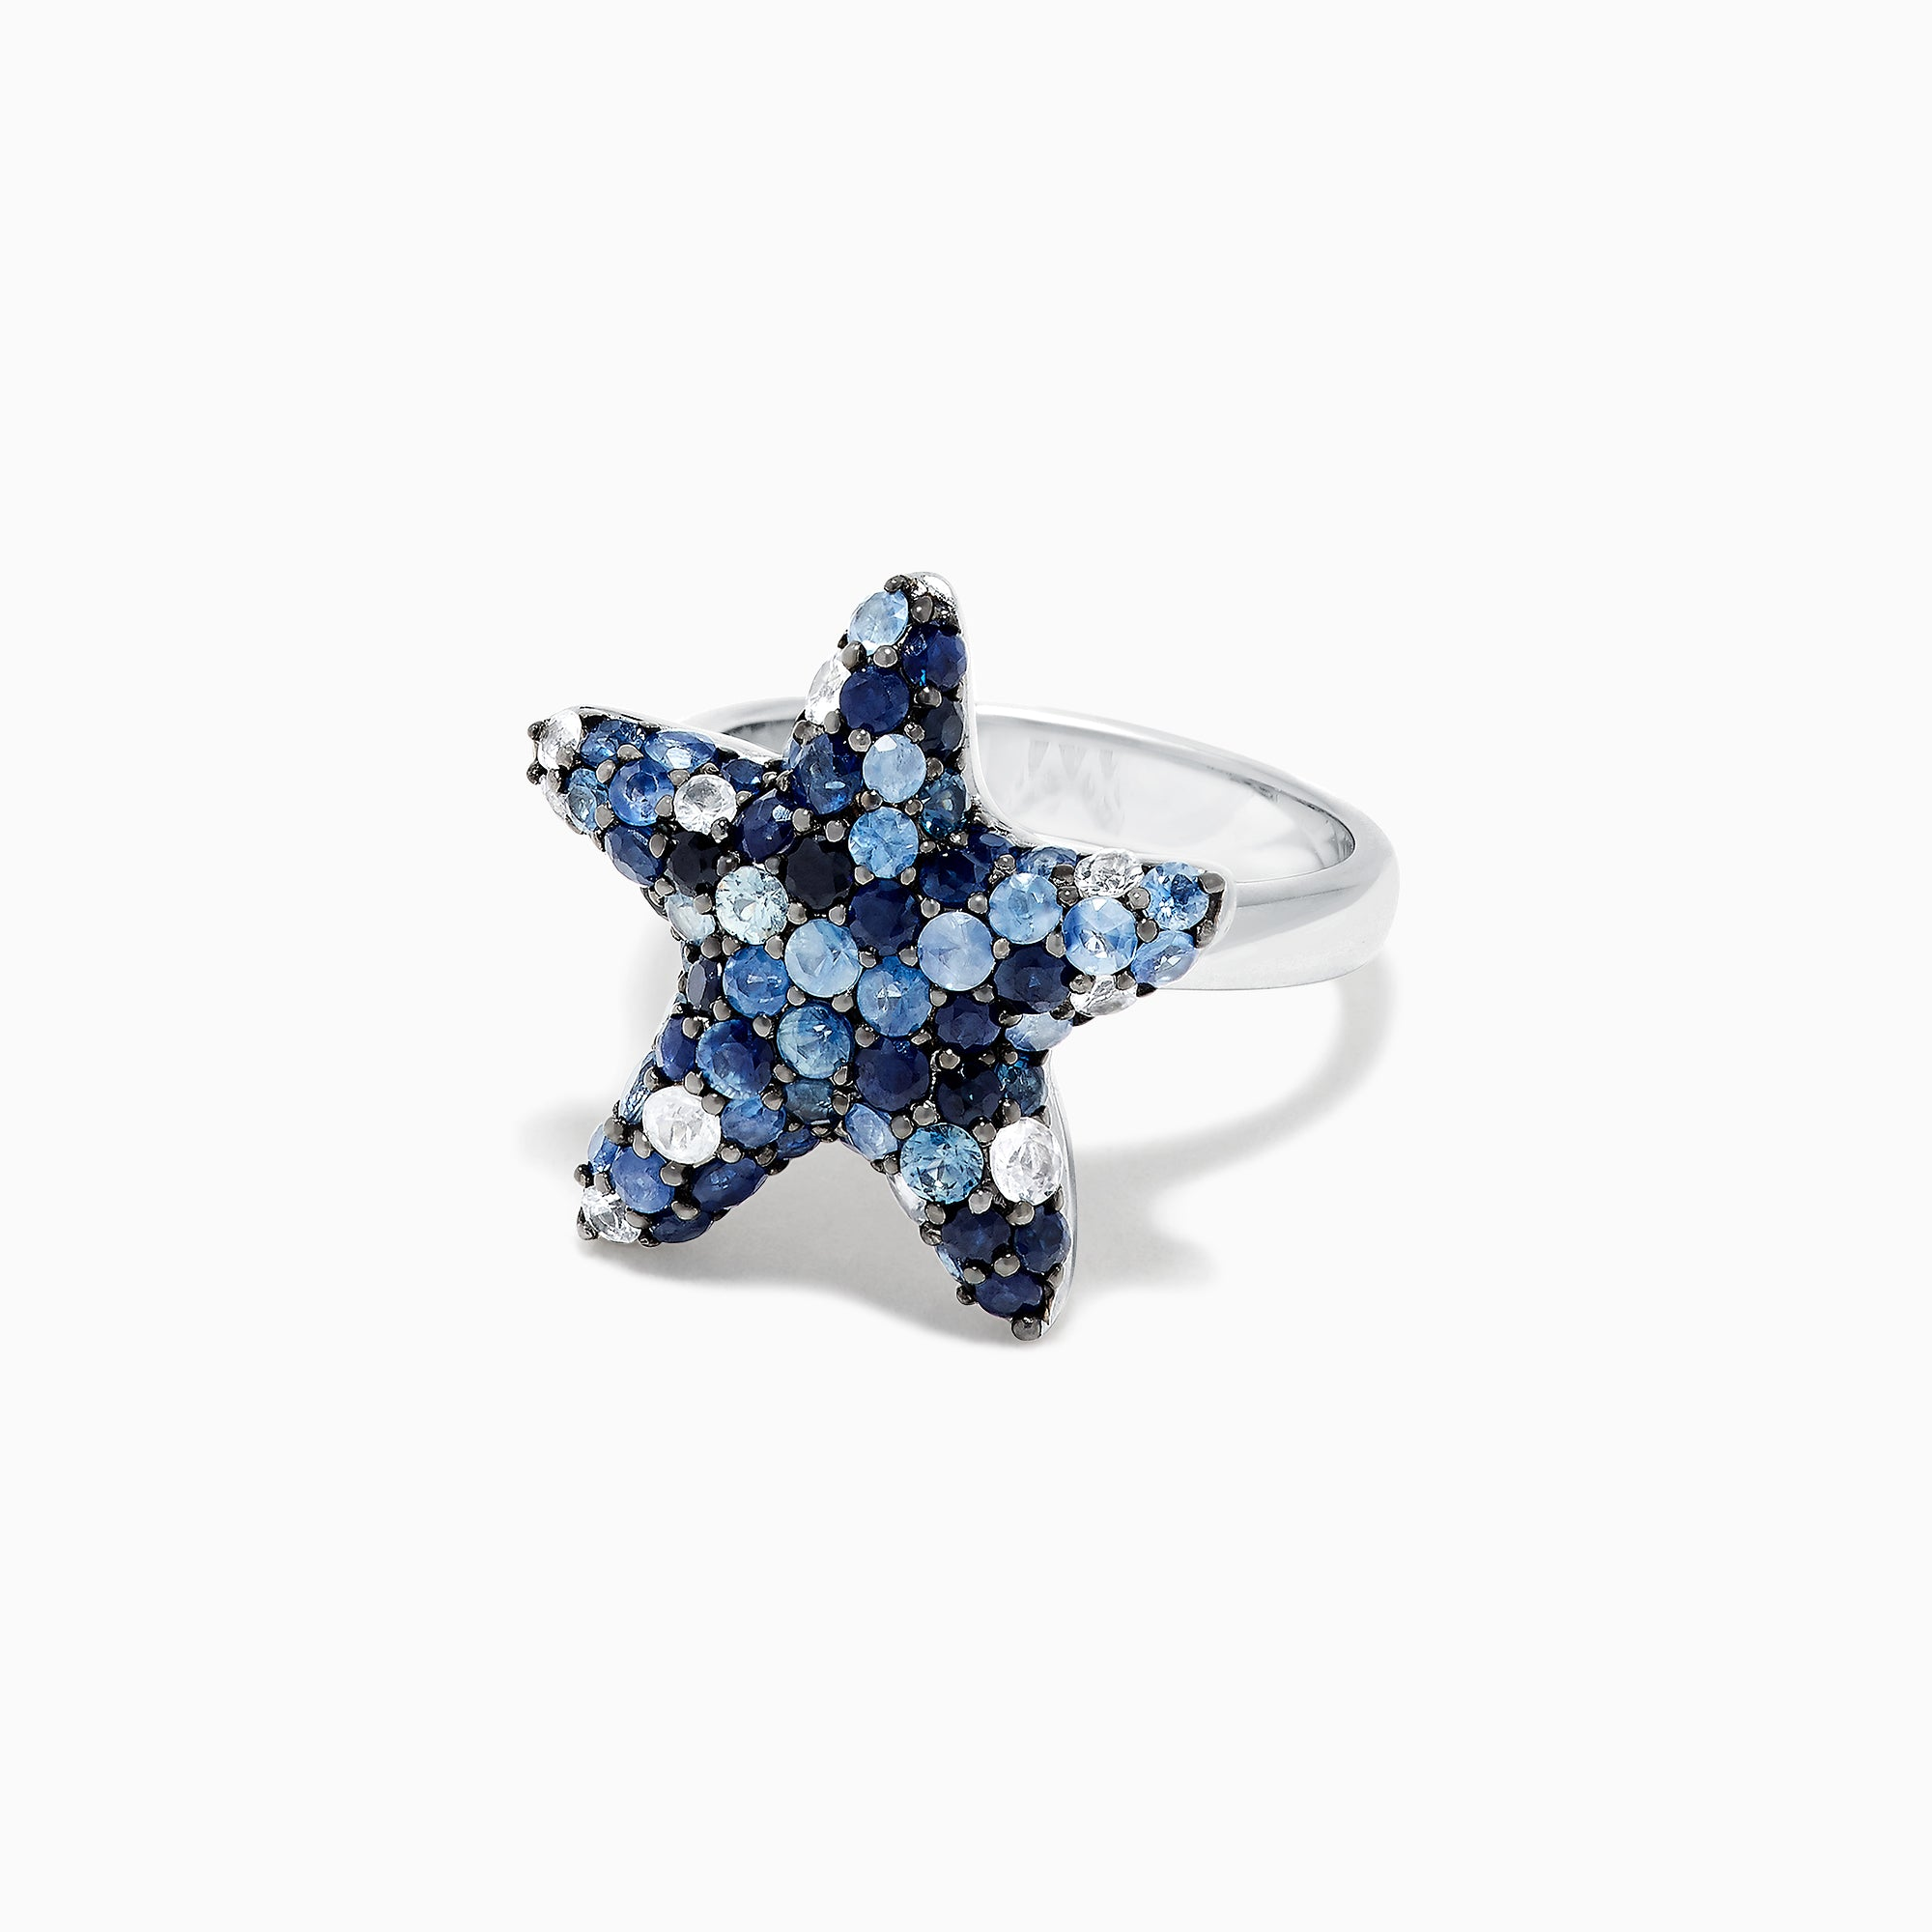 Effy 925 Sterling Silver Blue Sapphire Splash Starfish Ring, 3.07 TCW